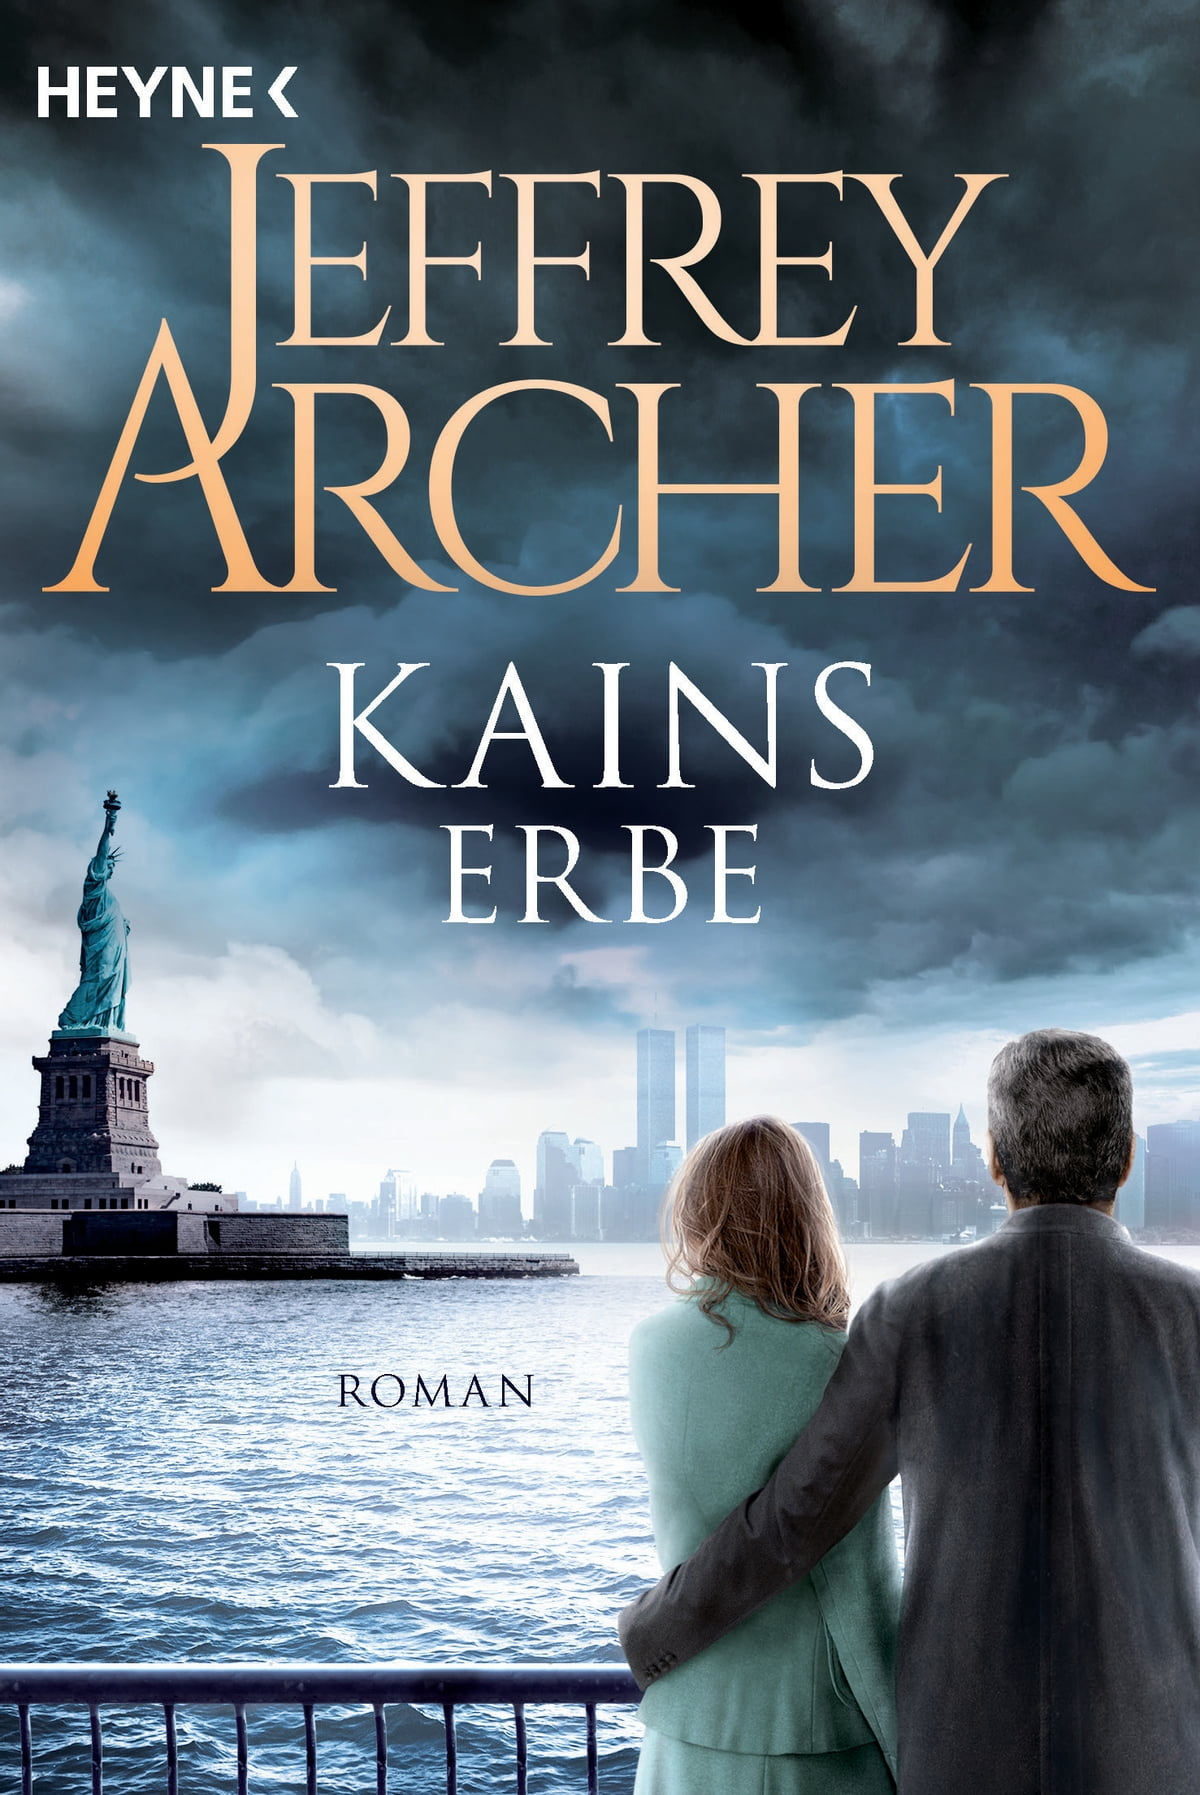 Jeffrey Archer Libros Kains Erbe Ebook By Jeffrey Archer Rakuten Kobo